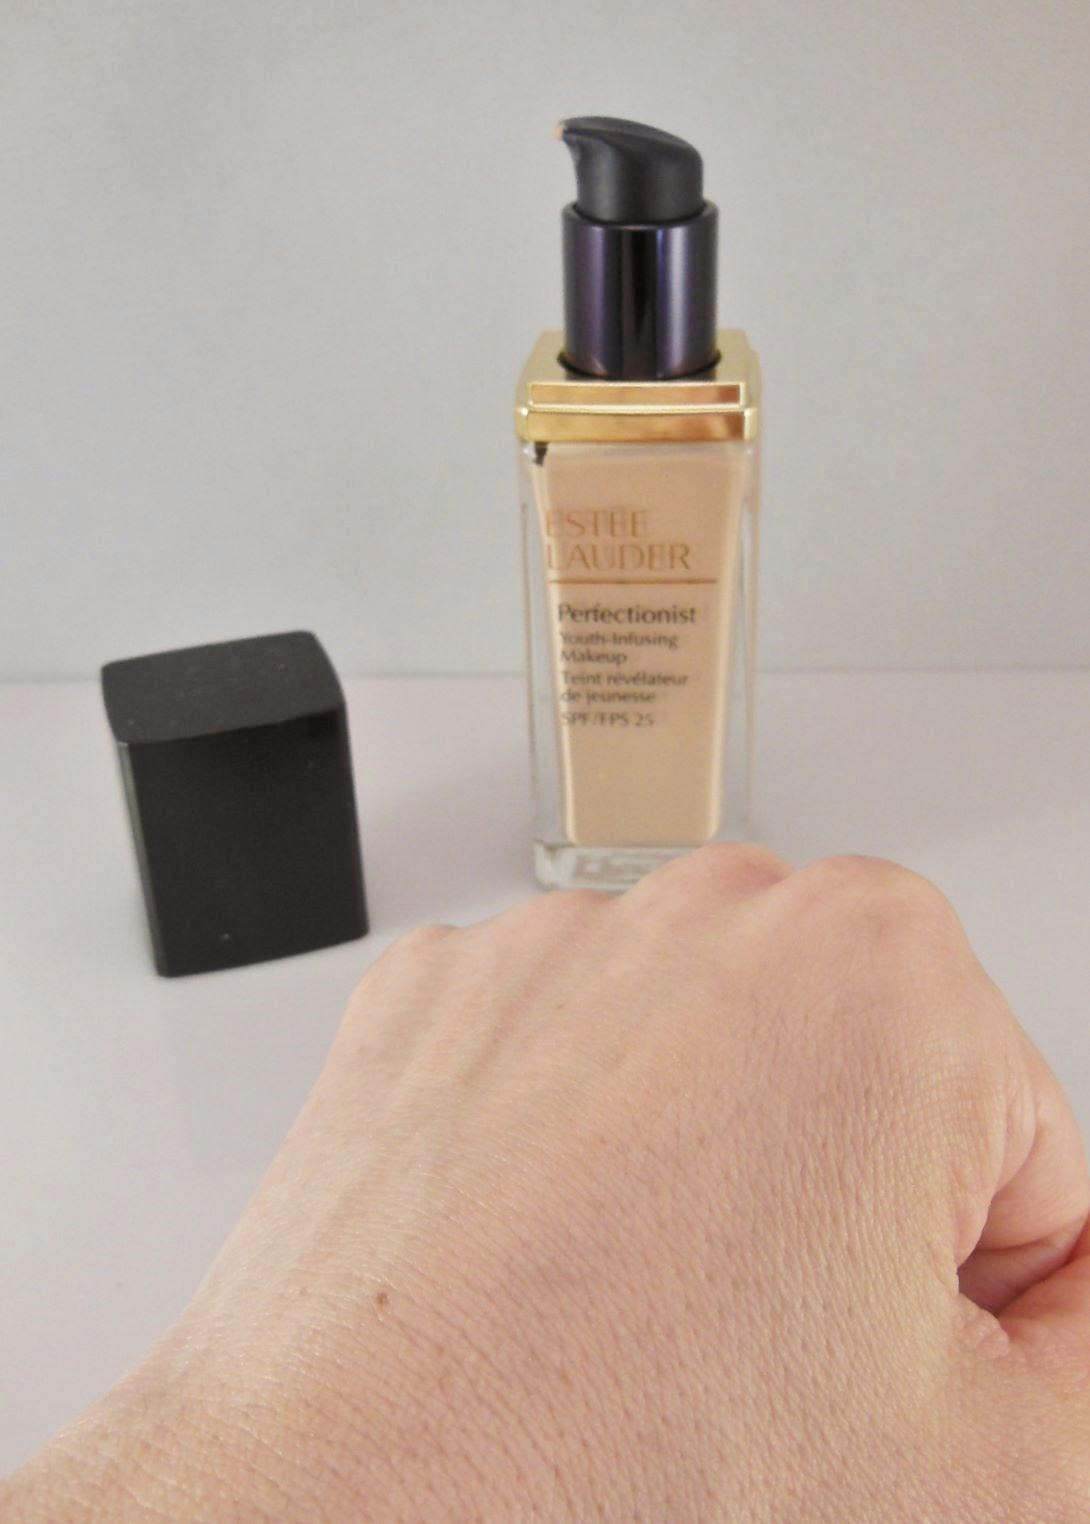 Product Review Estee Lauder Perfectionist Youth Infusing Makeup